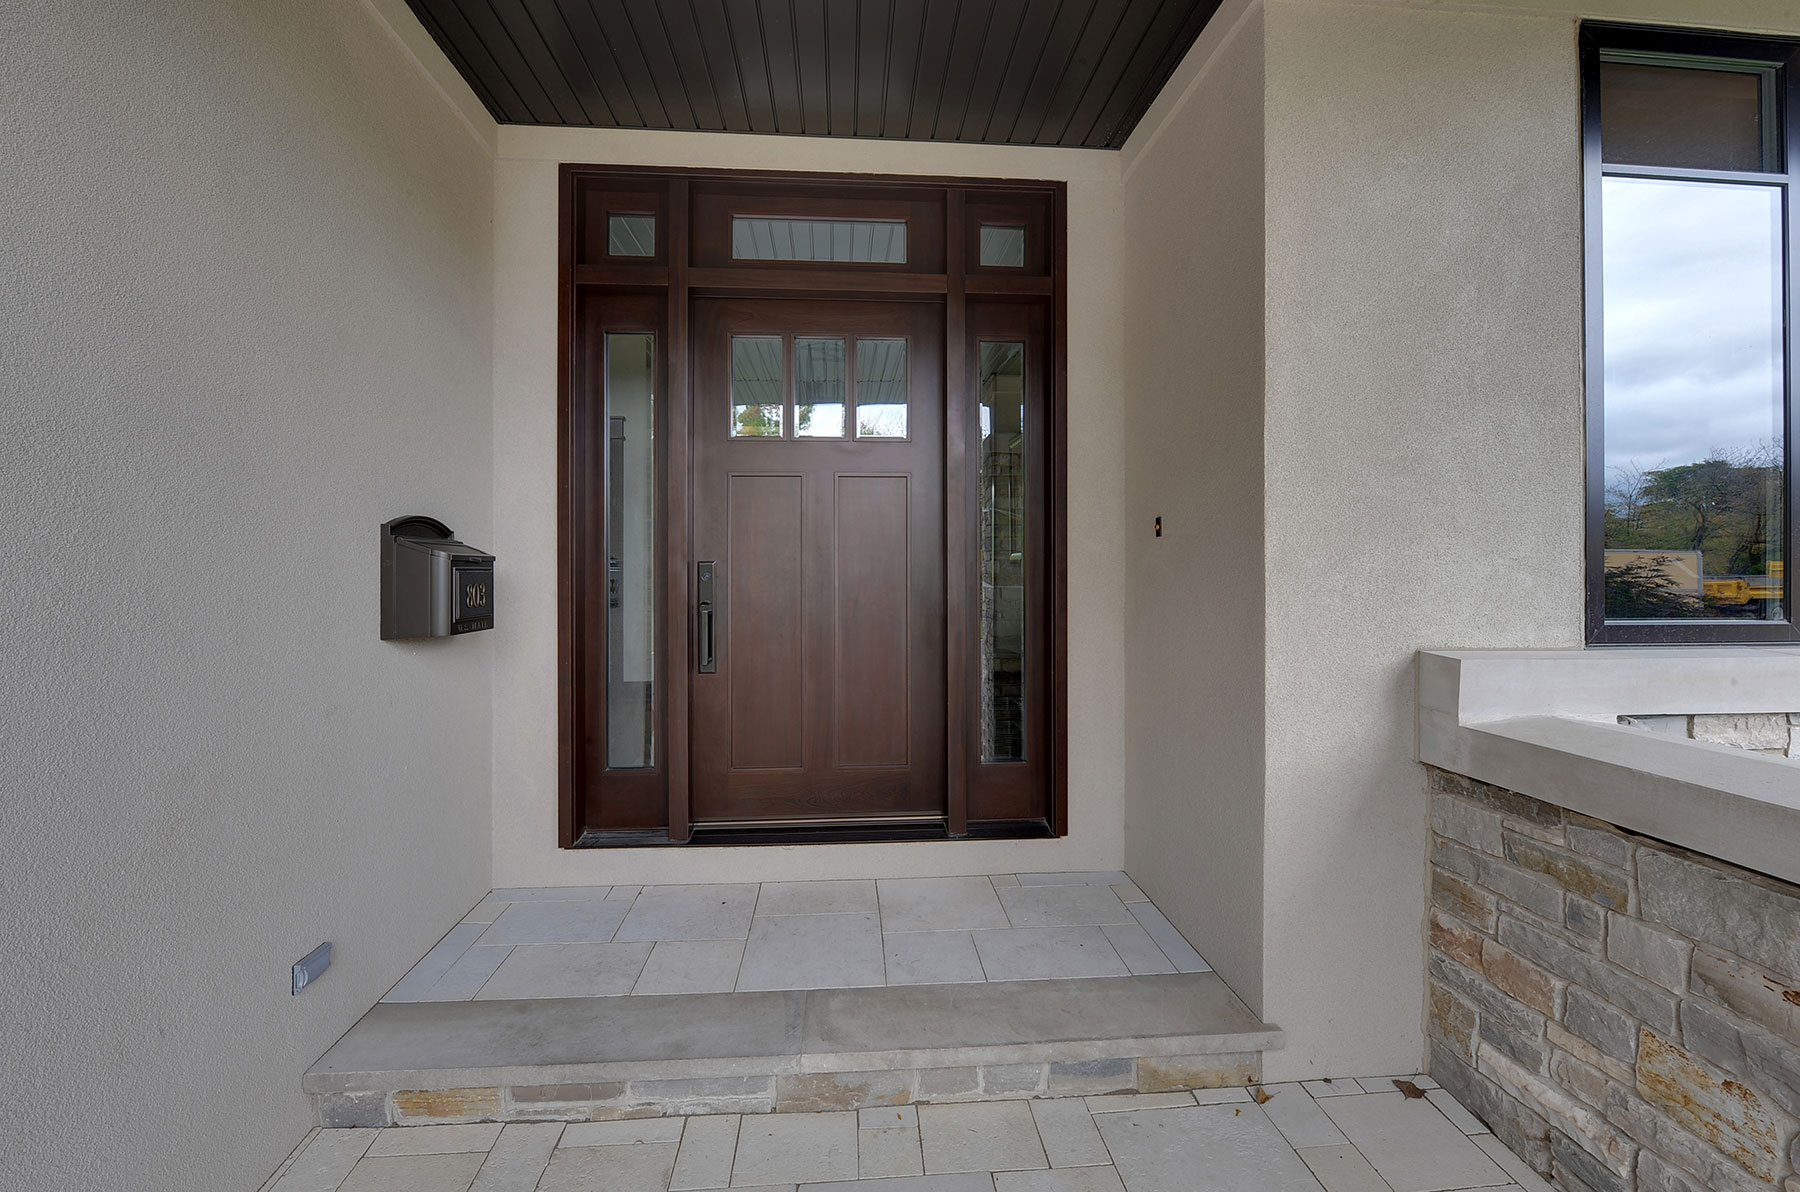 Custom Wood Front Entry Doors | Custom Craftsman Solid Mahogany Wood Door with Sidelites and Transom with Clear Beveled Glass, Exterior View  - Glenview Doors - Custom Doors in Chicago